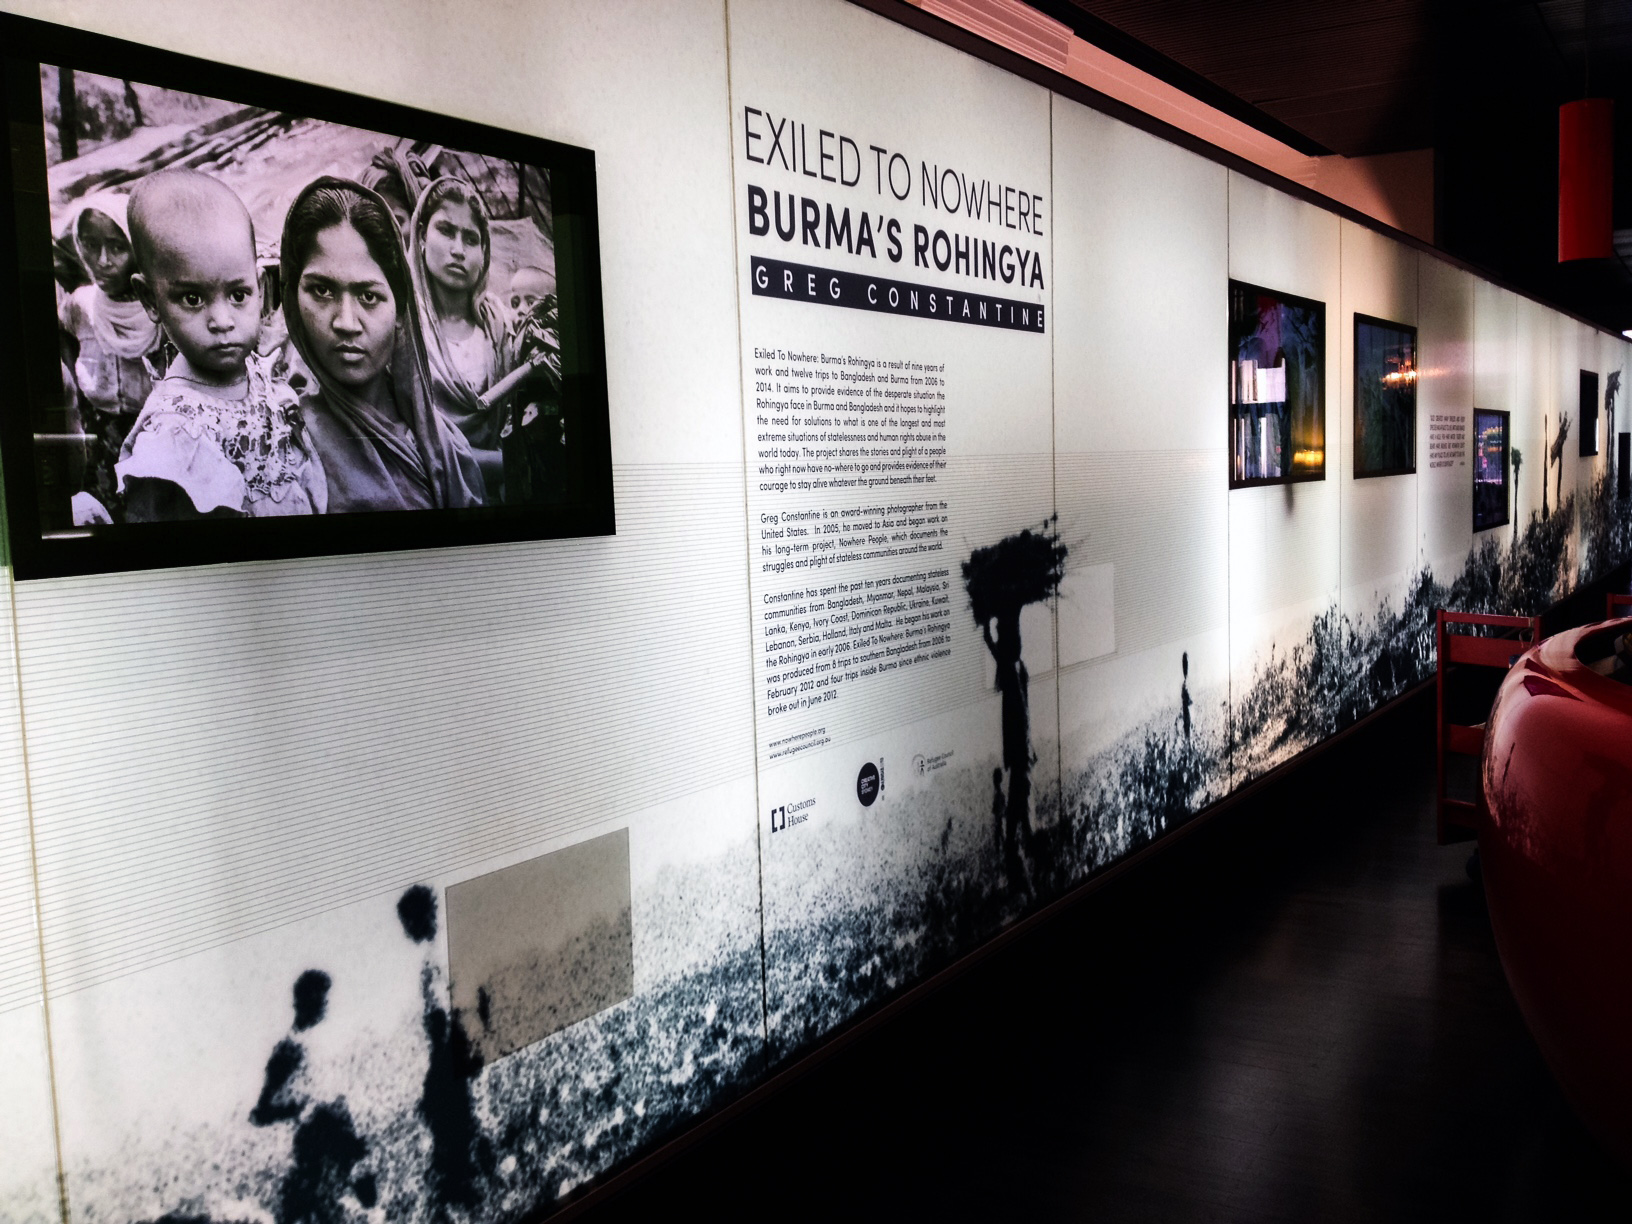 Exiled To Nowhere: Burma's Rohingya exhibition, Customs House - Sydney, Australia 2016